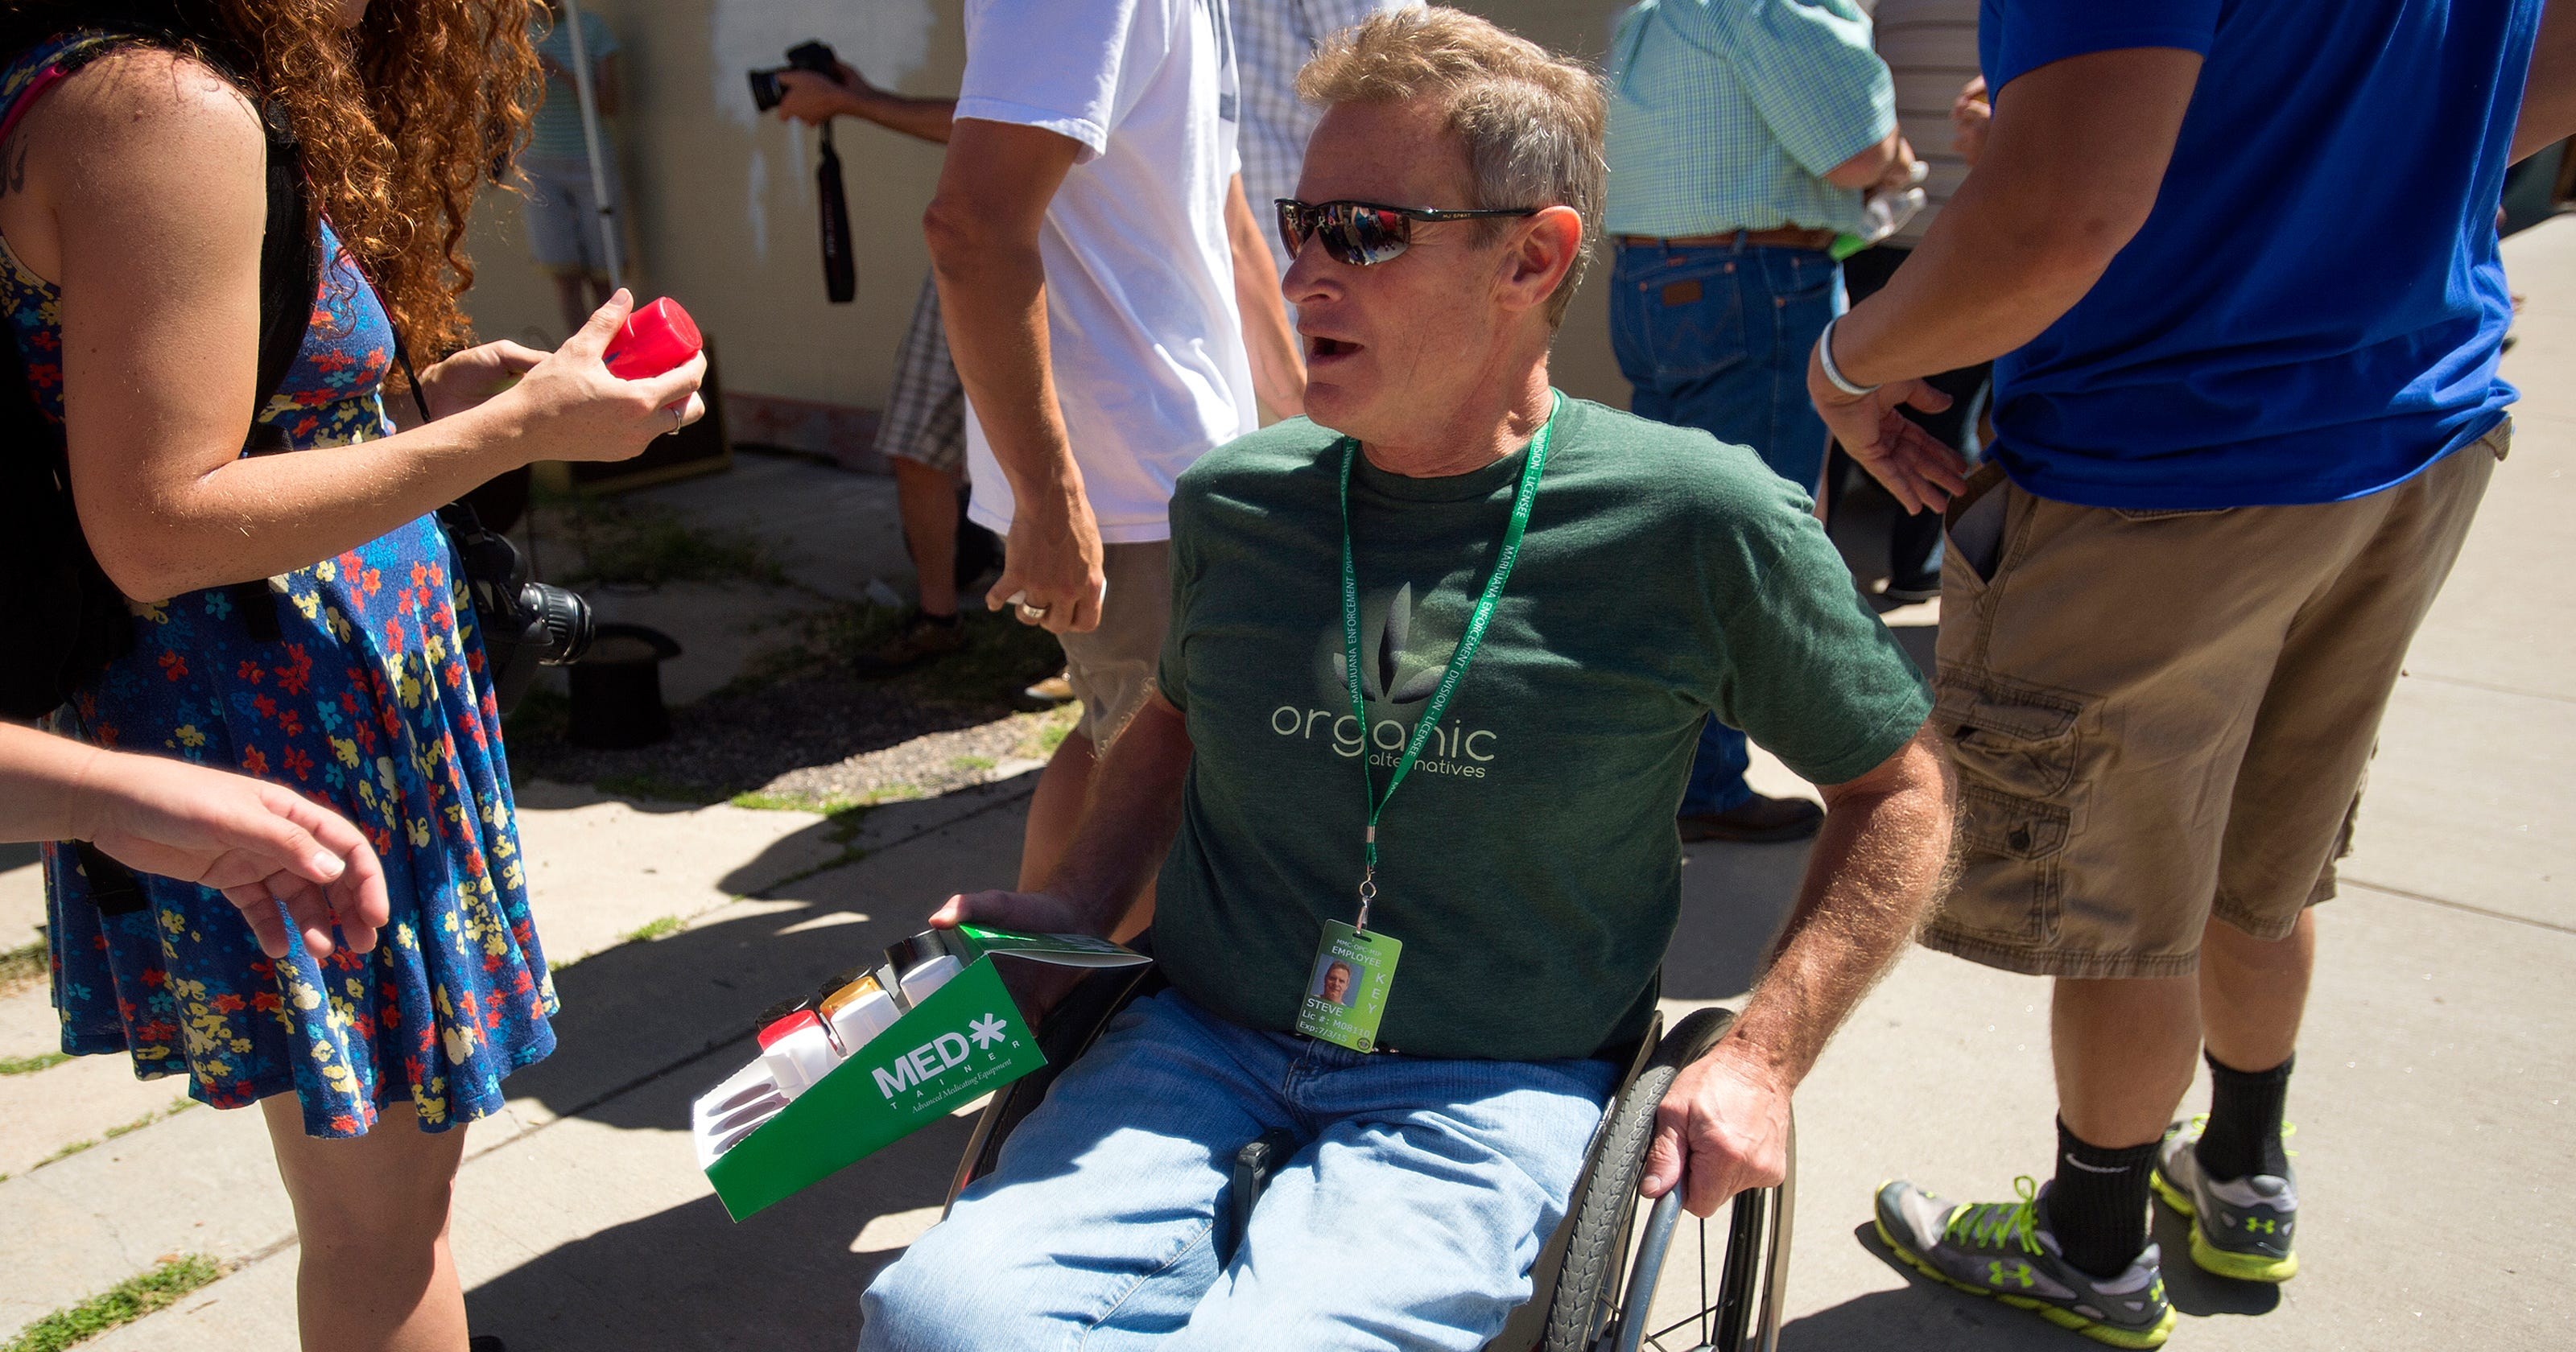 6f1a1957d92e Organic Alternatives owner settles with feds for  200K over disability  payments